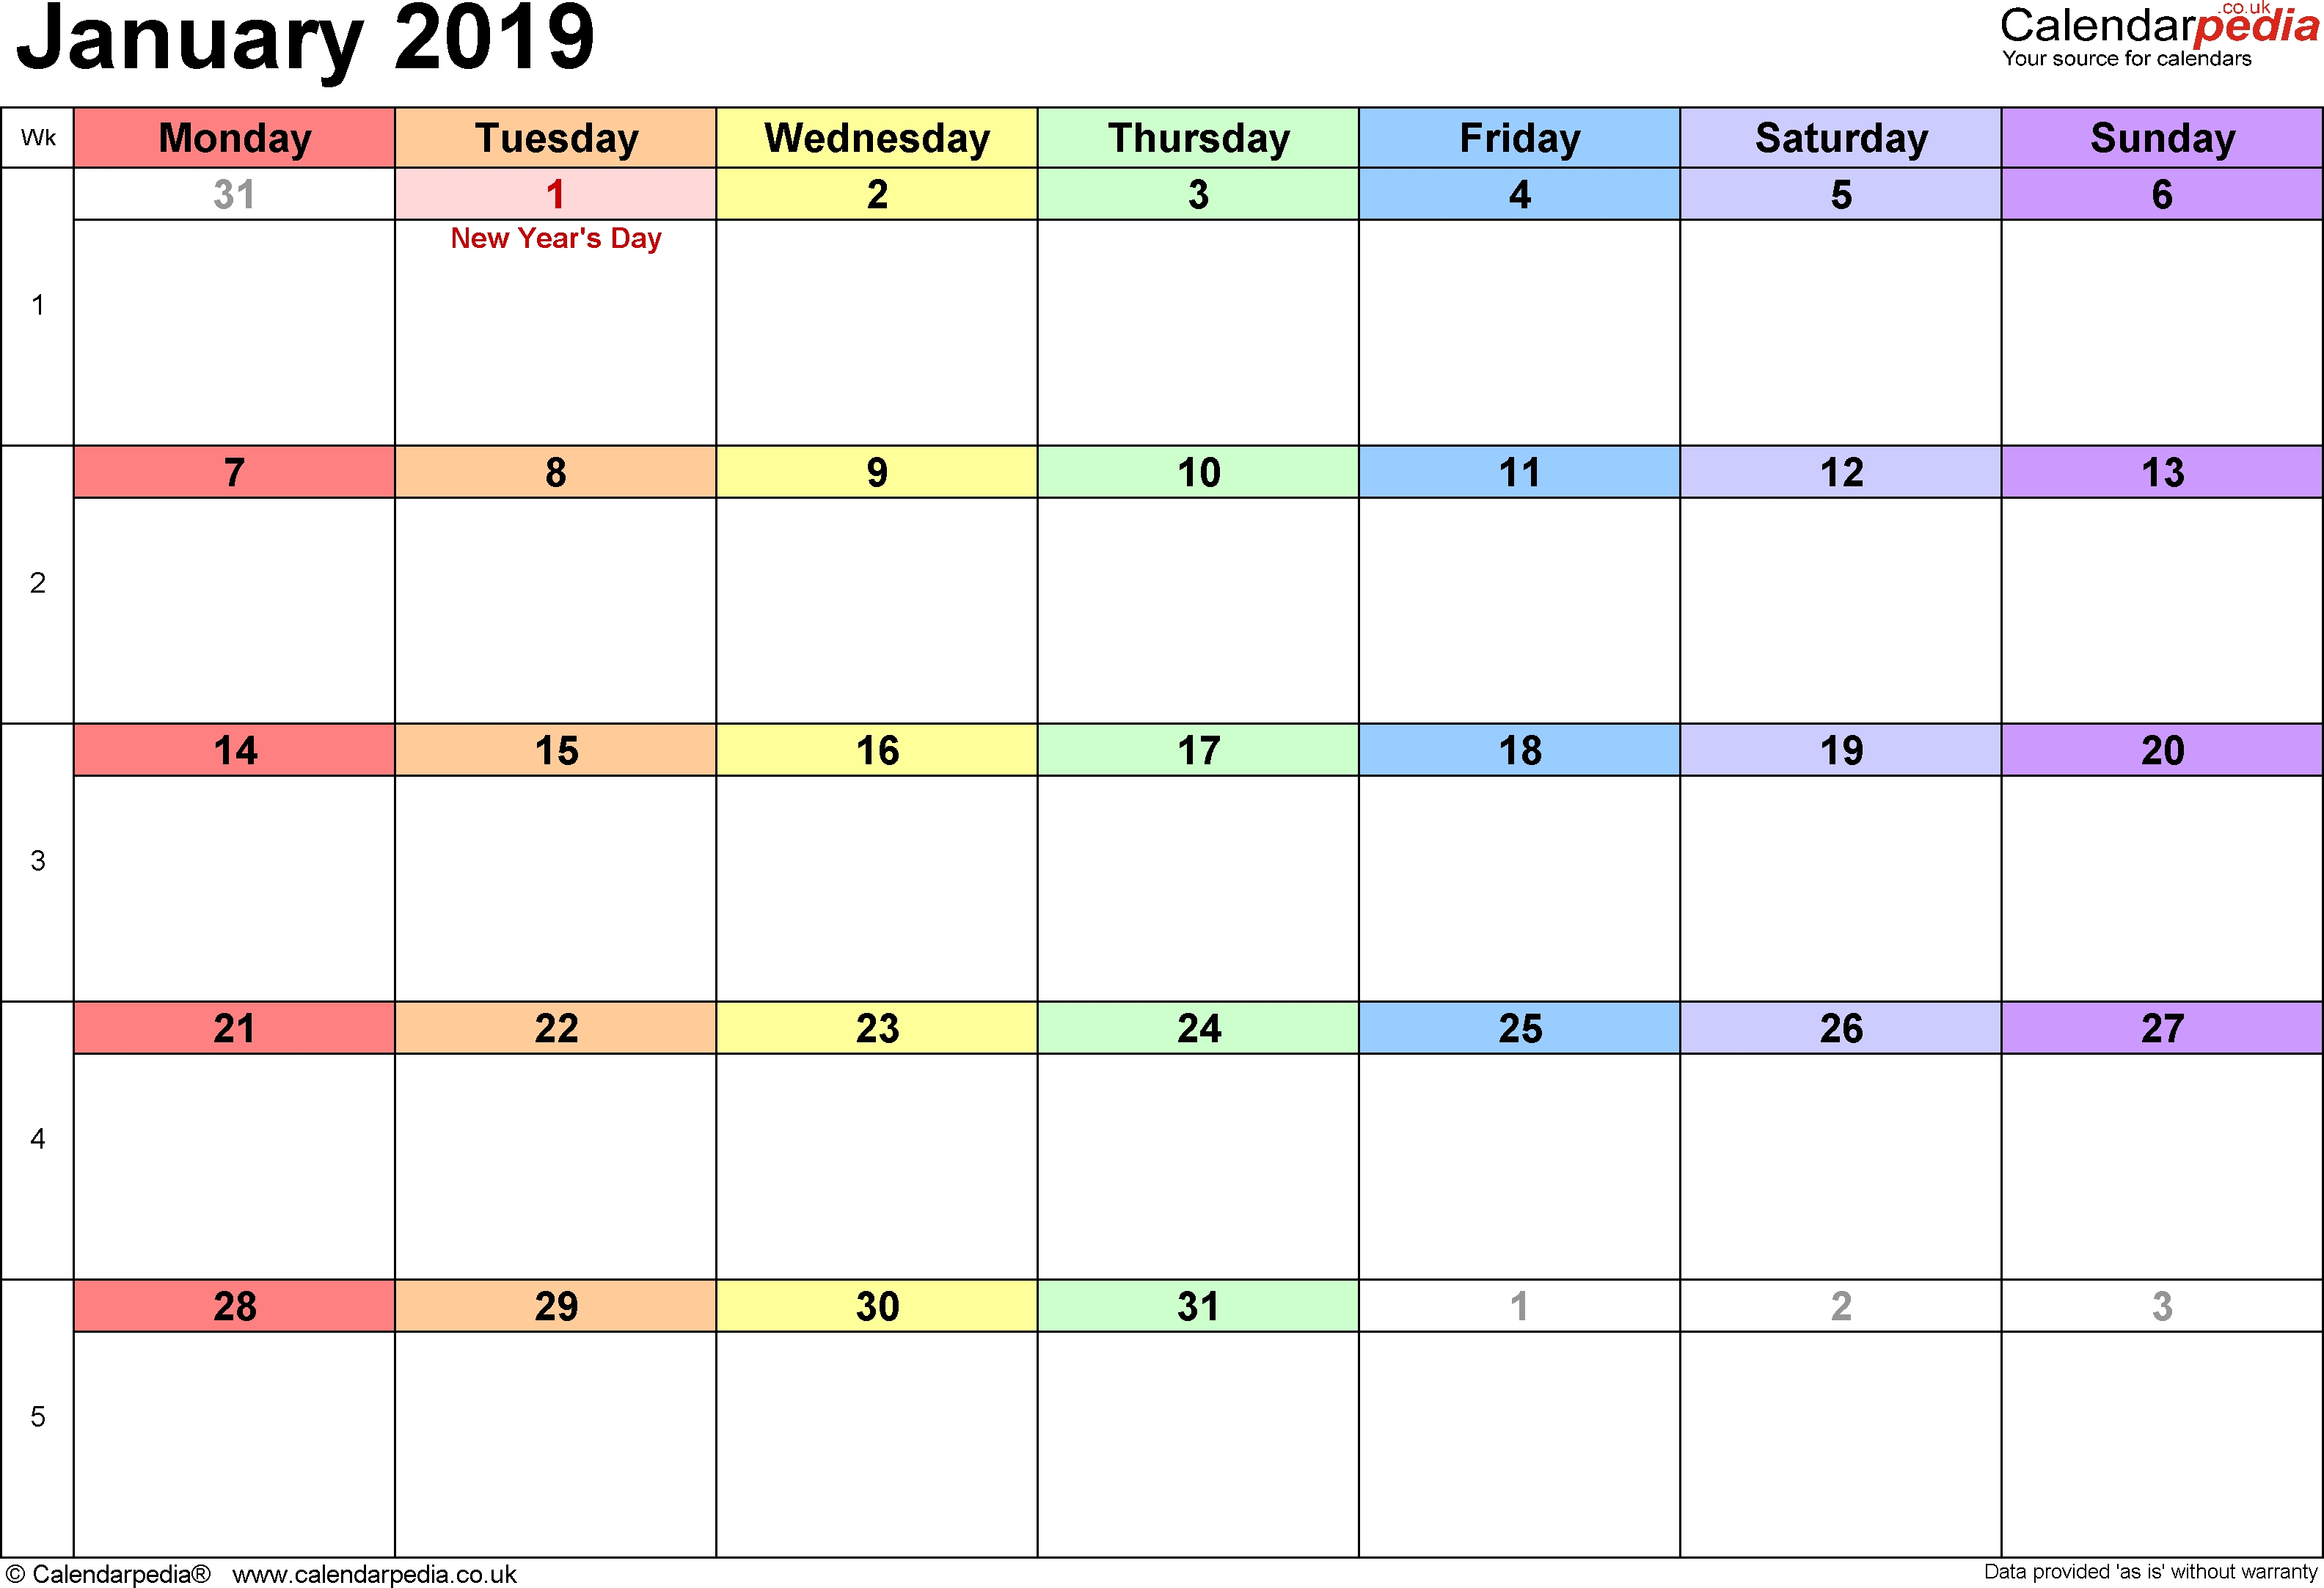 Rainbow Calendar 2019 - Yahoo Image Search Results | June